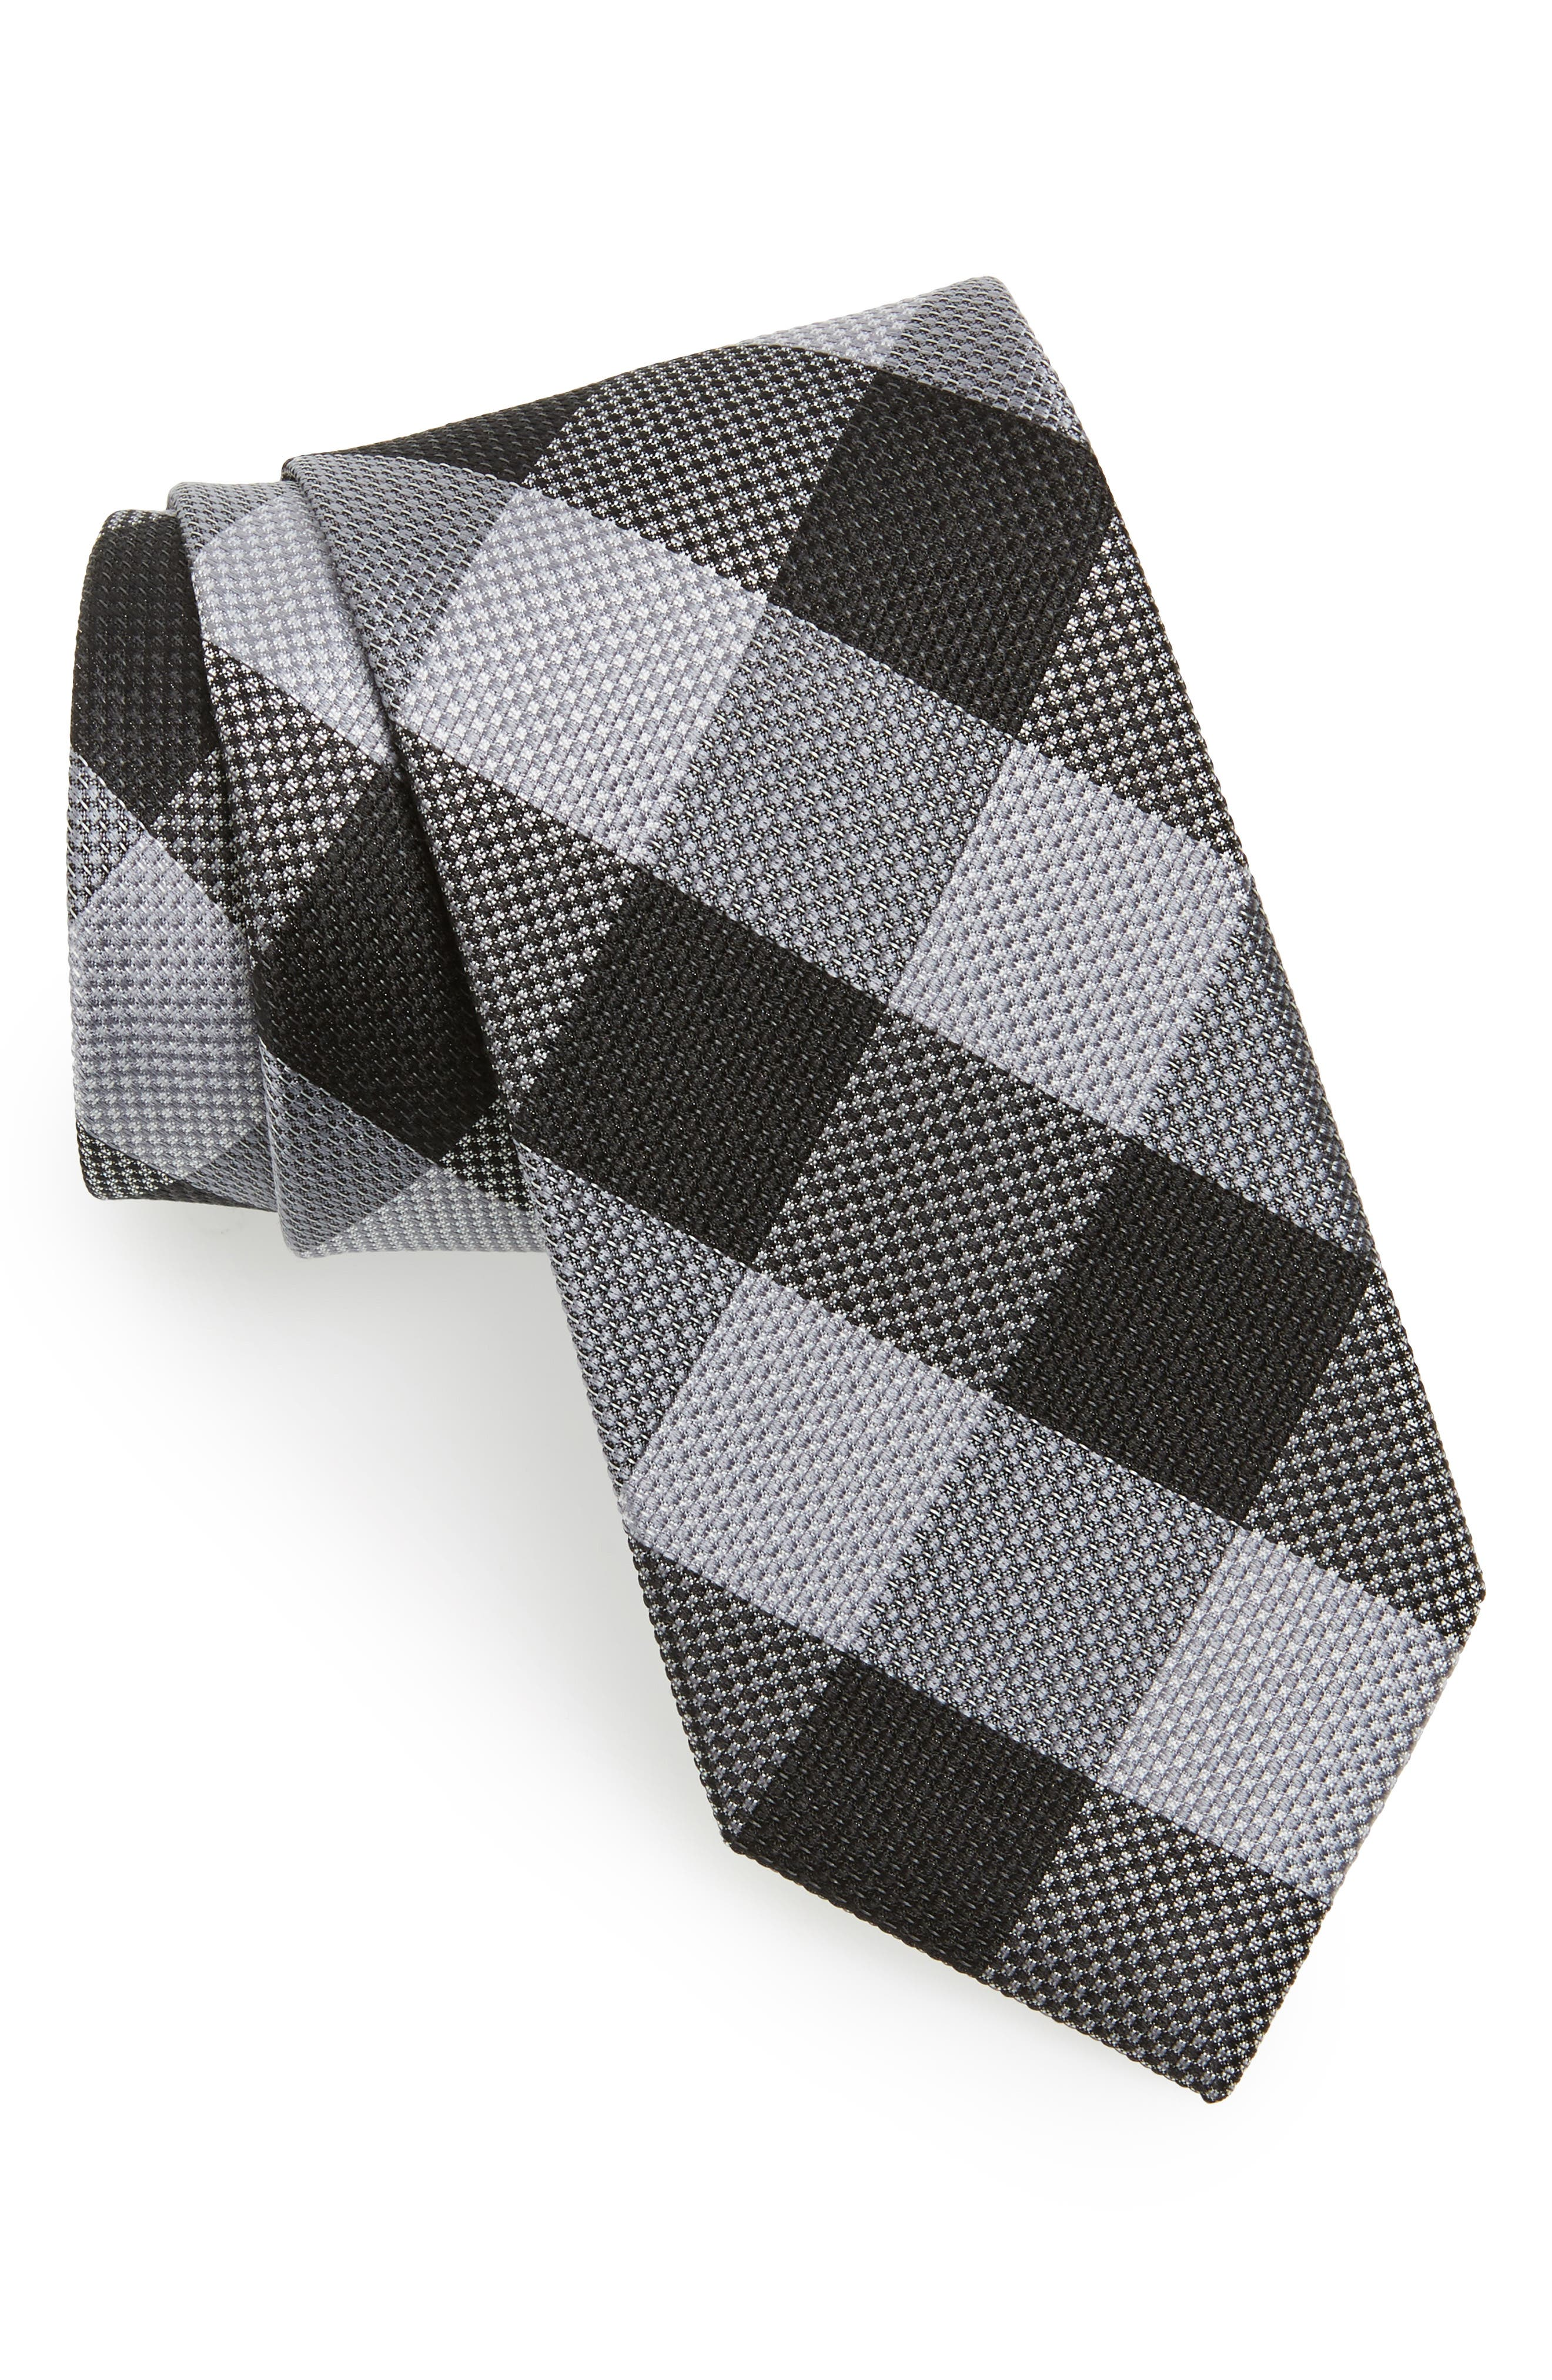 Alternate Image 1 Selected - Calibrate Check Silk Tie